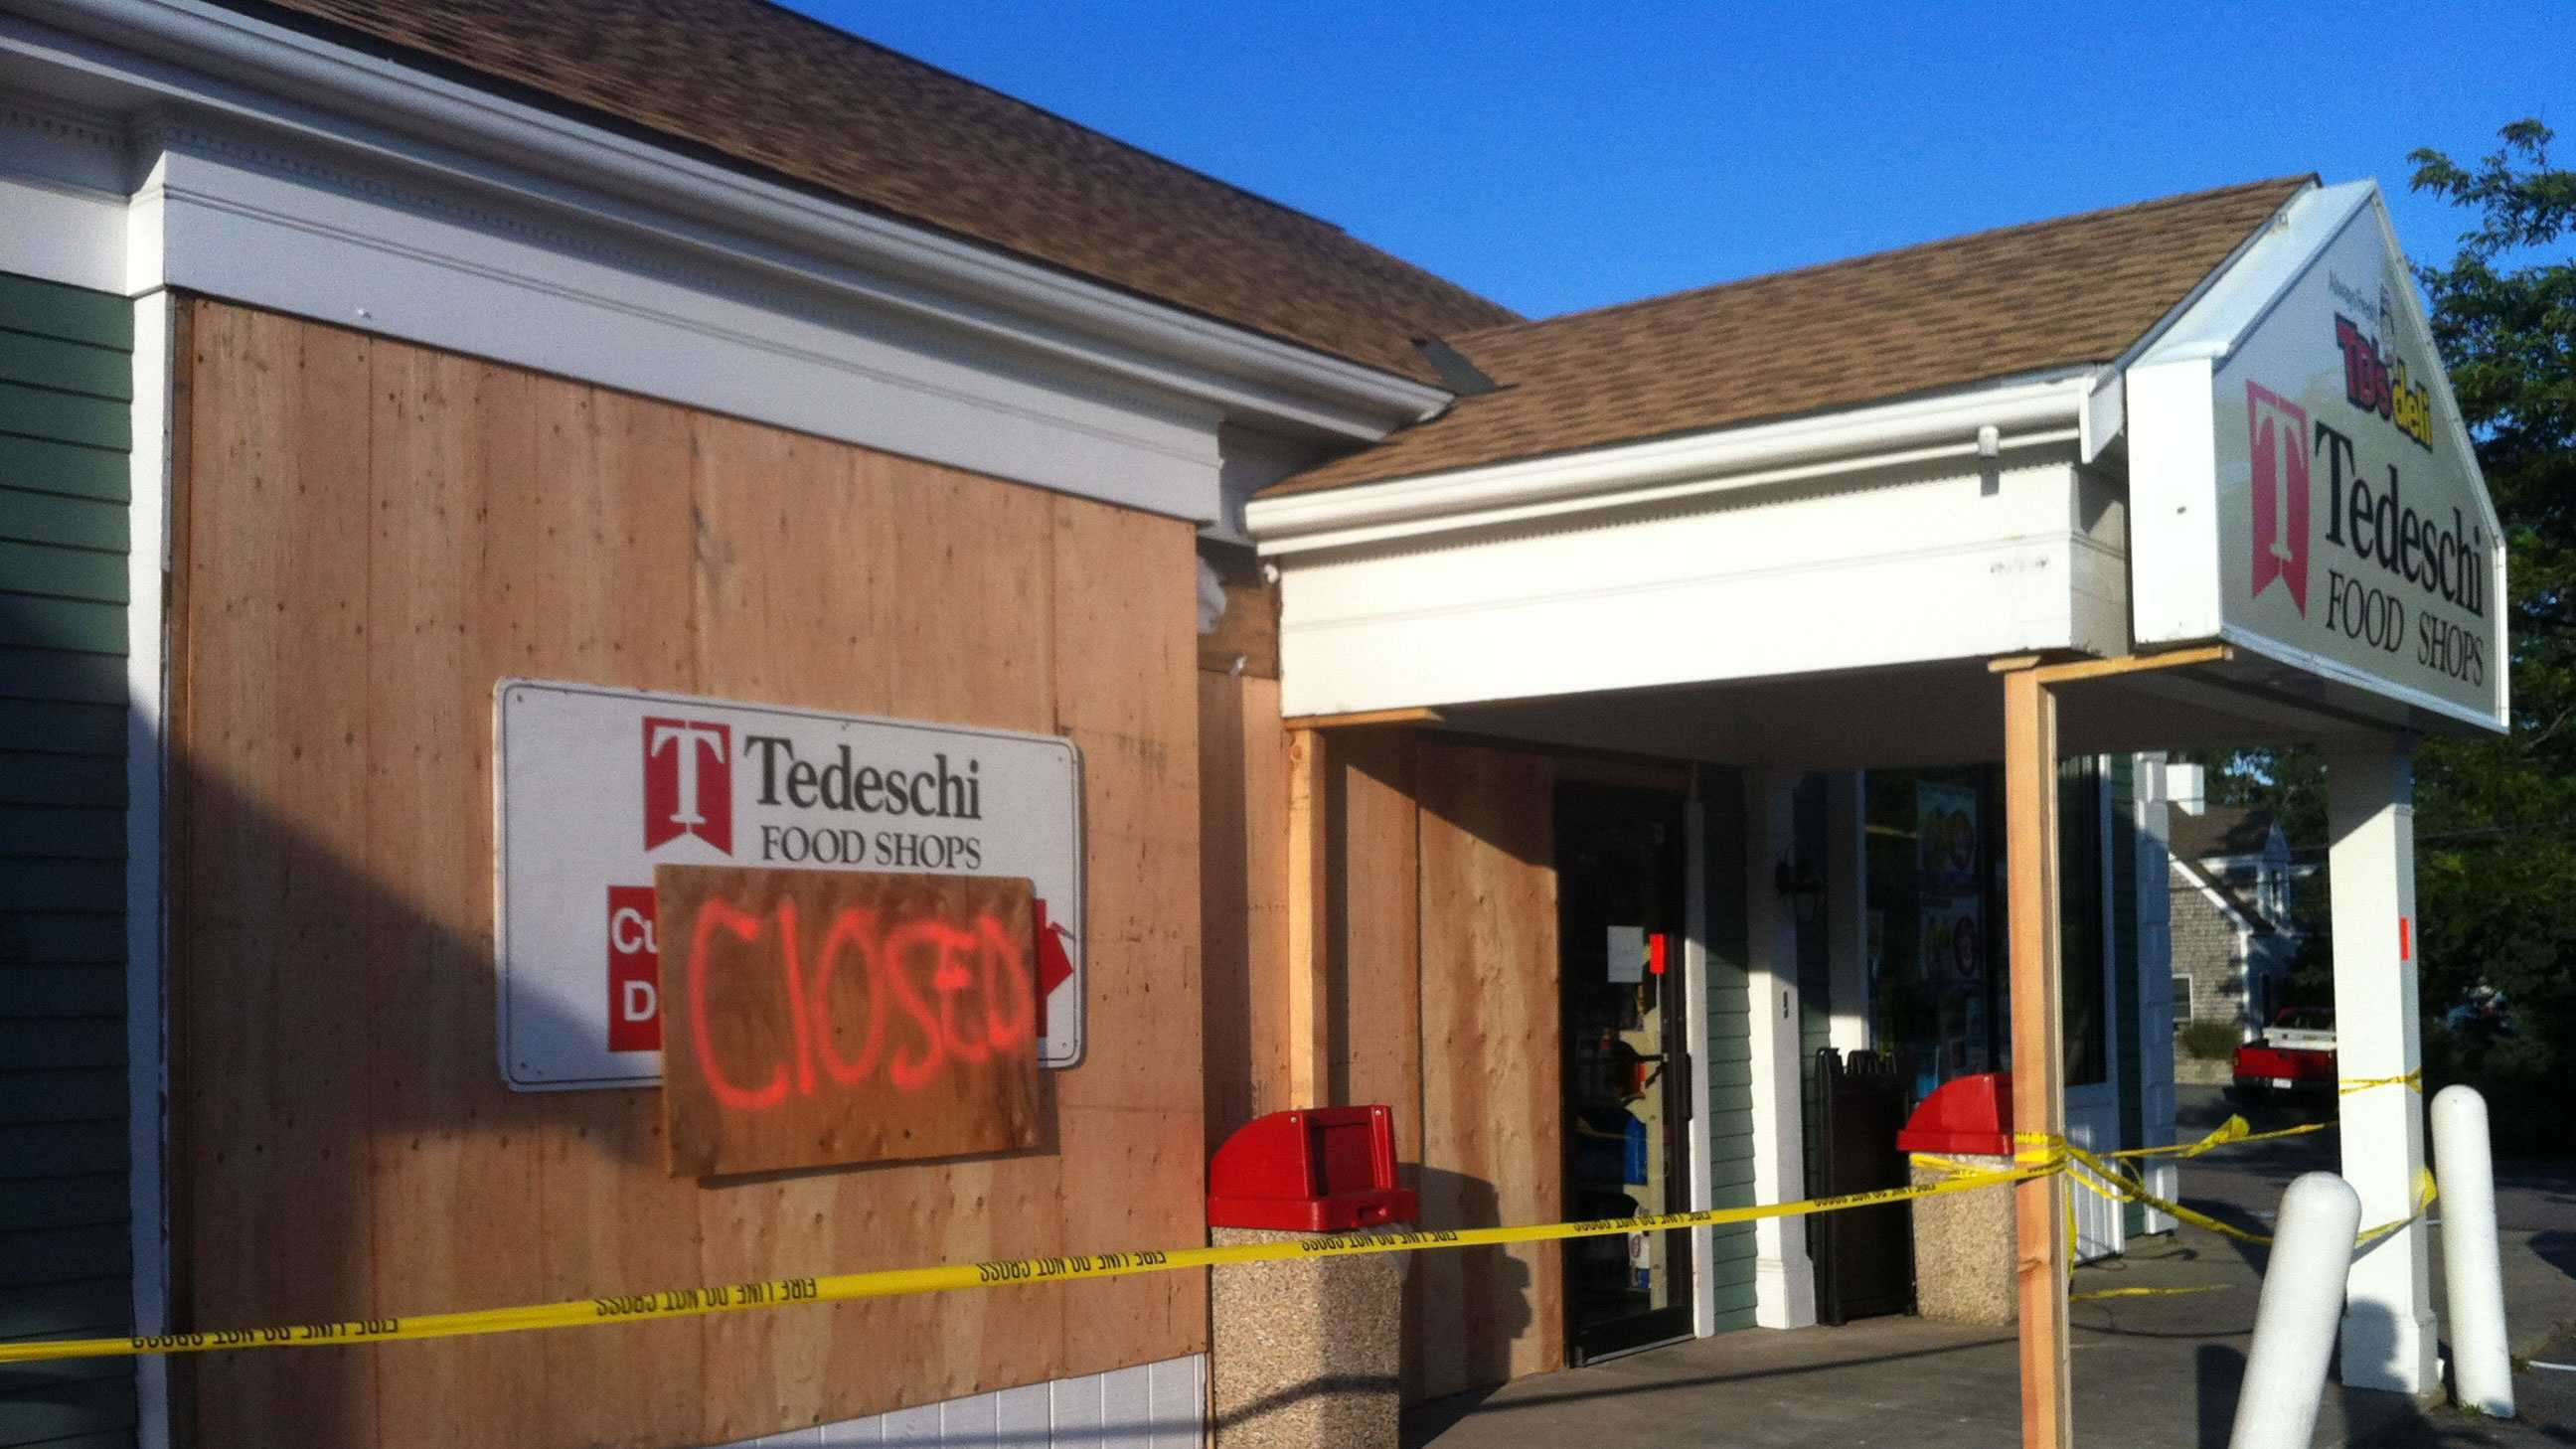 The Tedeschi's on Route 28 in West Dennis remained closed Sunday, Aug. 25, 2013, after being hit by a pickup truck earlier in the day.